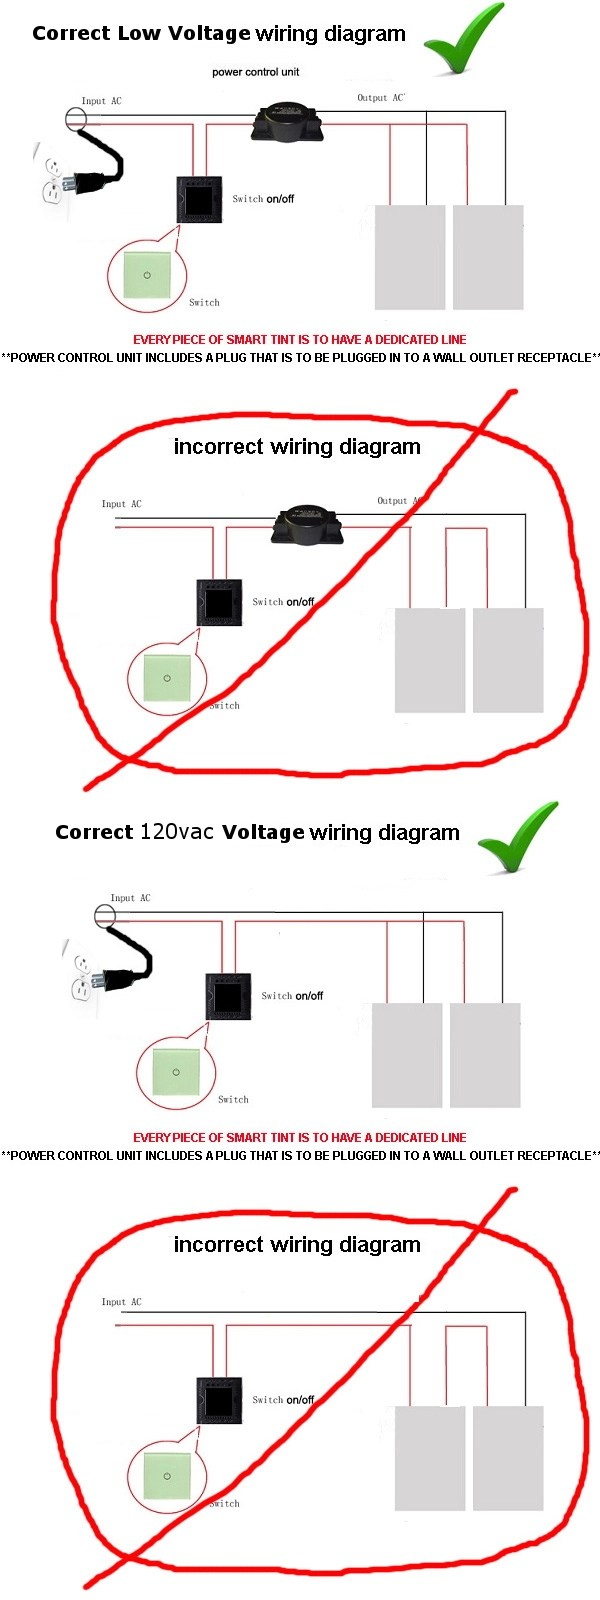 hight resolution of wiring should be in a parallel circuit and not daisy chained in series this diagram applies to all of our material both our low voltage and 120 vac line